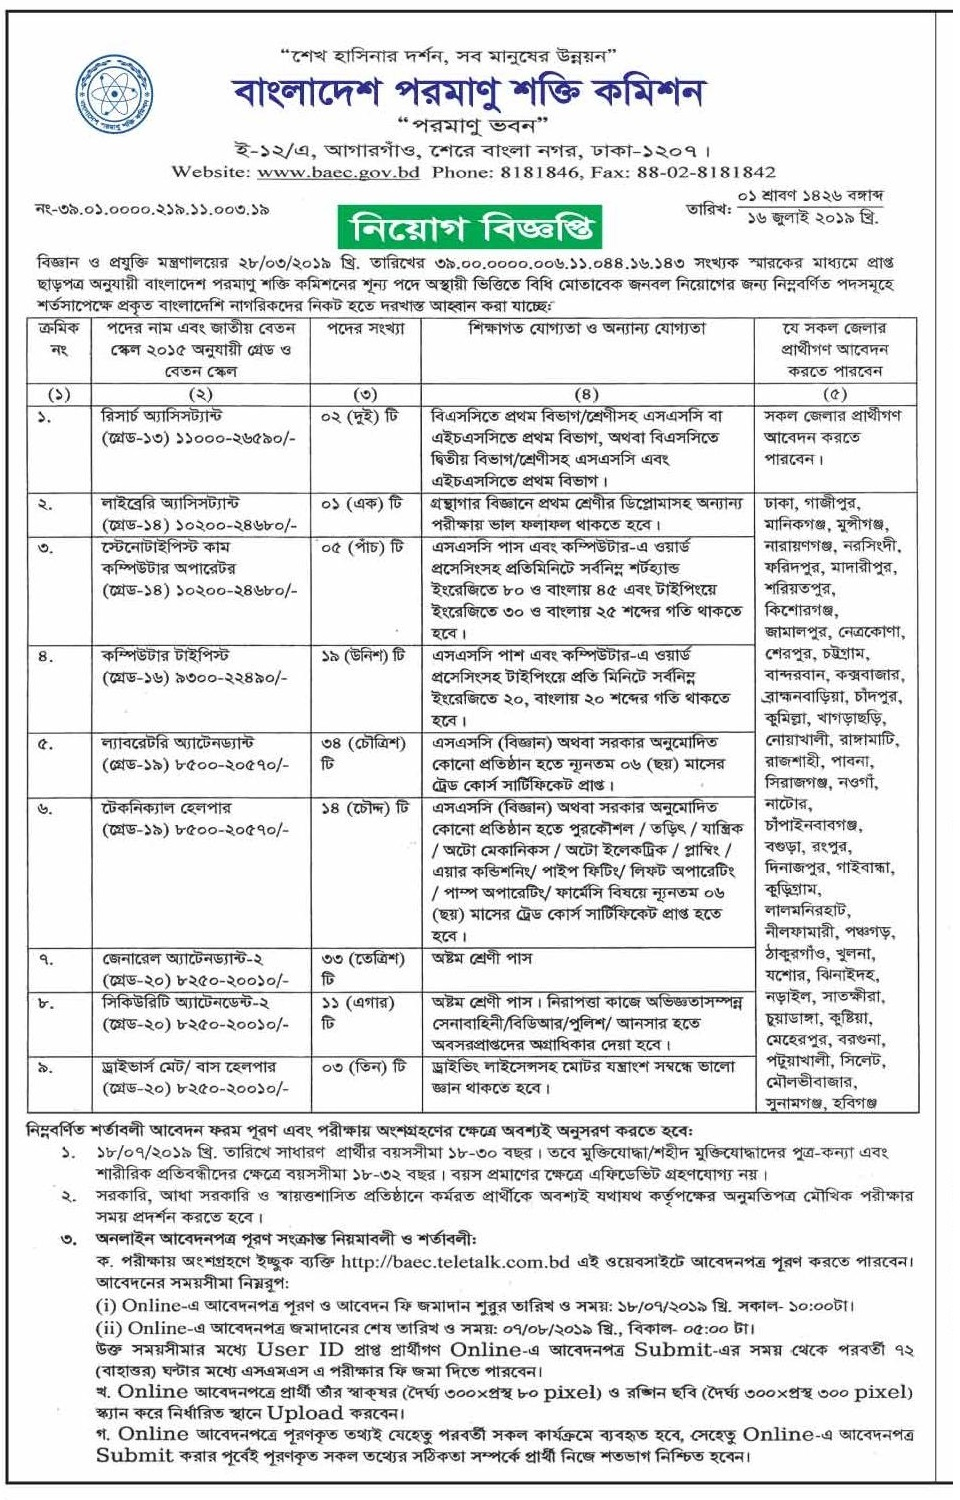 Bangladesh Atomic Energy Commission Job Circular 2019 | BD Jobs Careers